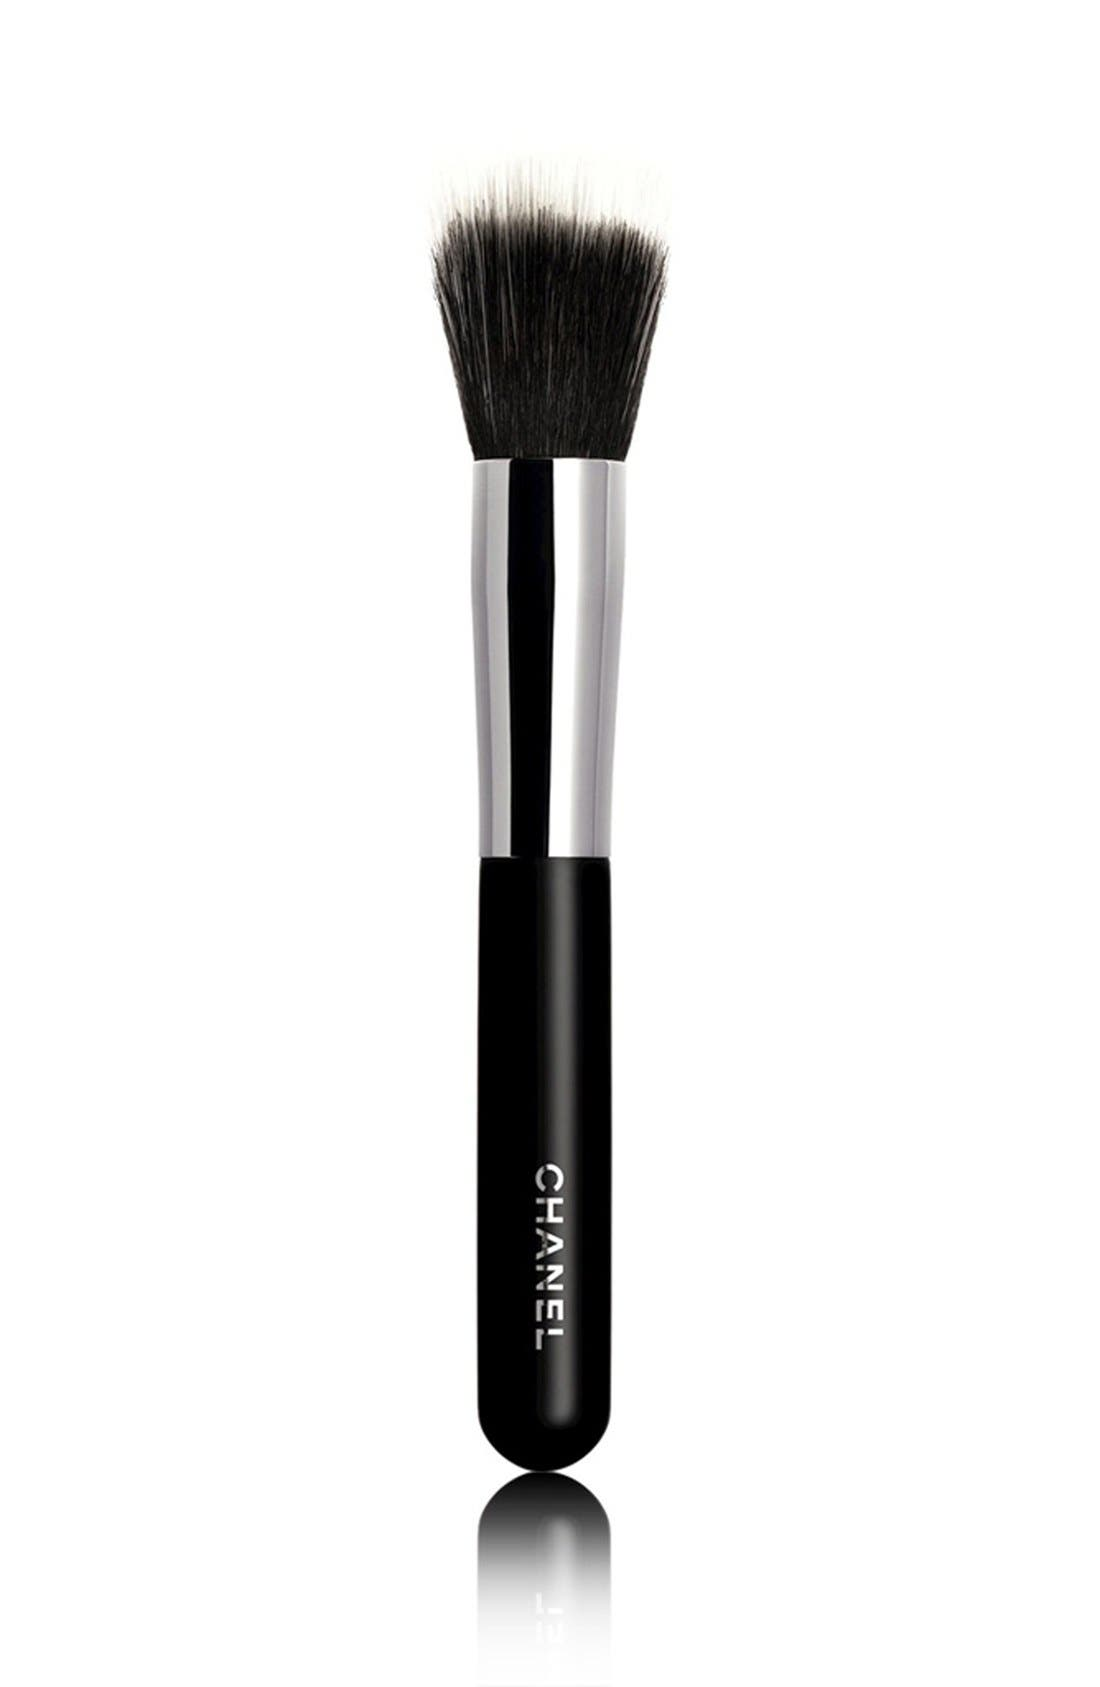 PINCEAU FOND DE TEINT ESTOMPE<br />Blending Foundation Brush #7,                         Main,                         color, 000